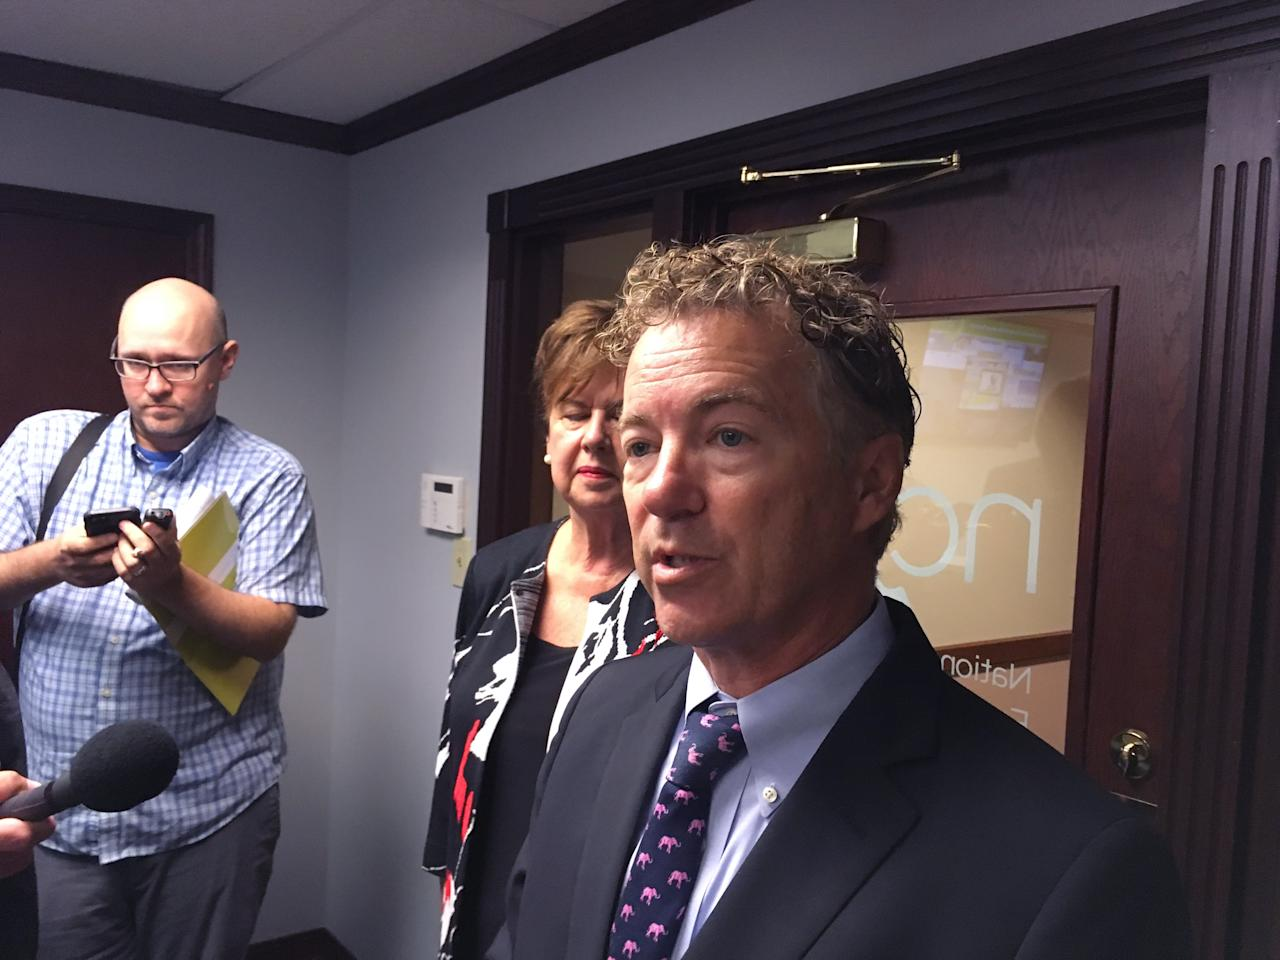 <p> Kentucky Republican U.S. Sen Rand Paul tells reporters he plans to vote against a GOP bill that would repeal and replace most of former President Barack Obama's health care law on Monday, Sept. 25, 2017, in Louisville, Ky. (AP Photo/Adam Beam) </p>